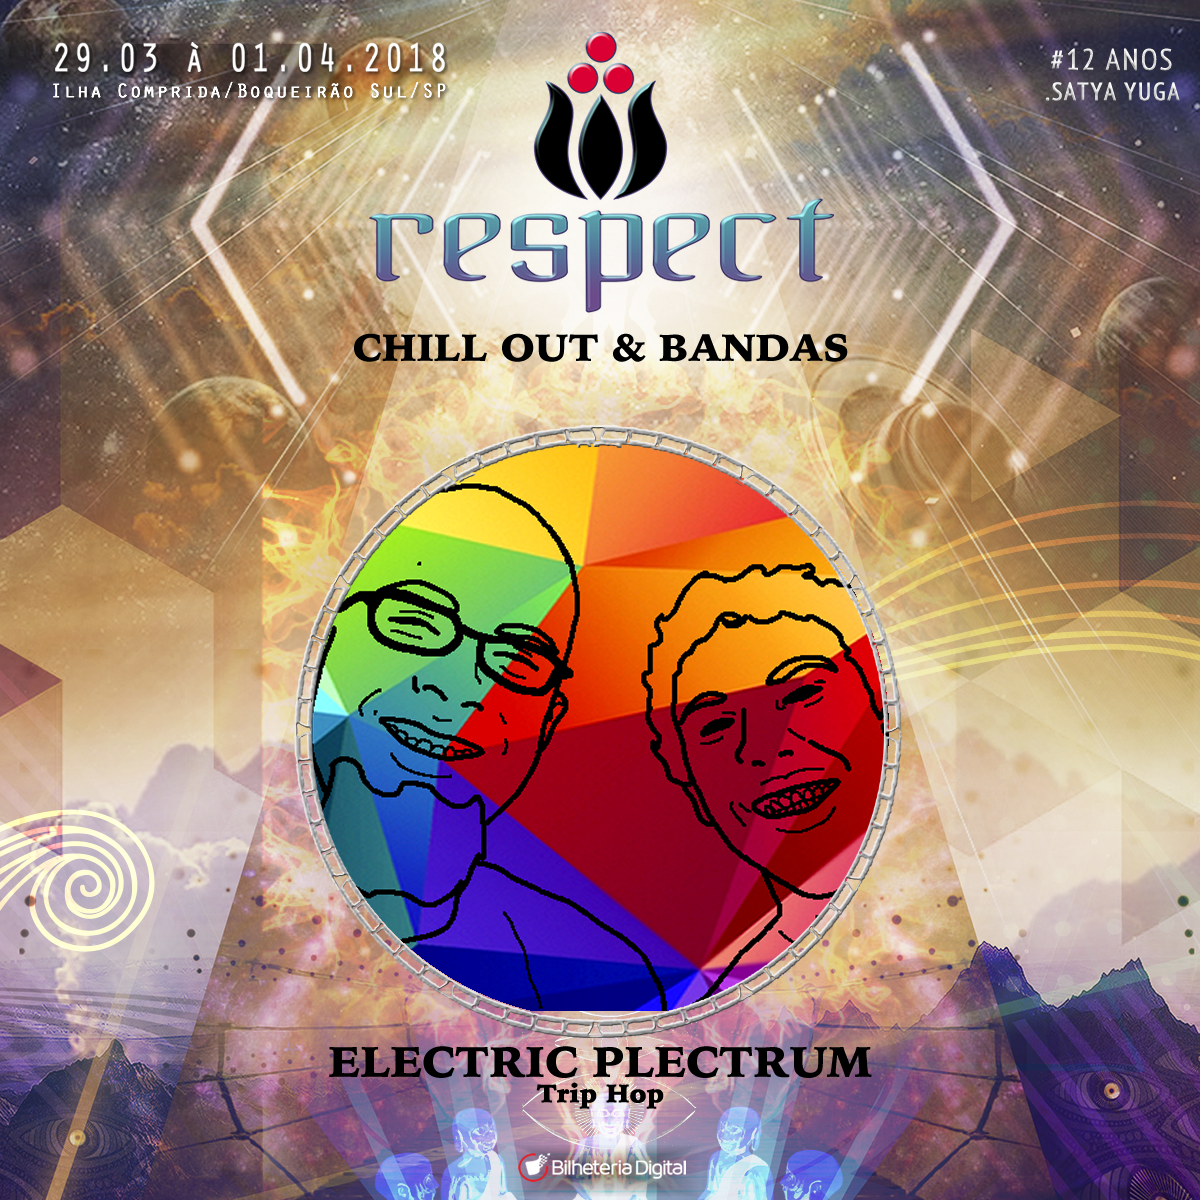 Electric Plectrum @ Artista Confirmado Respect Festival 2018